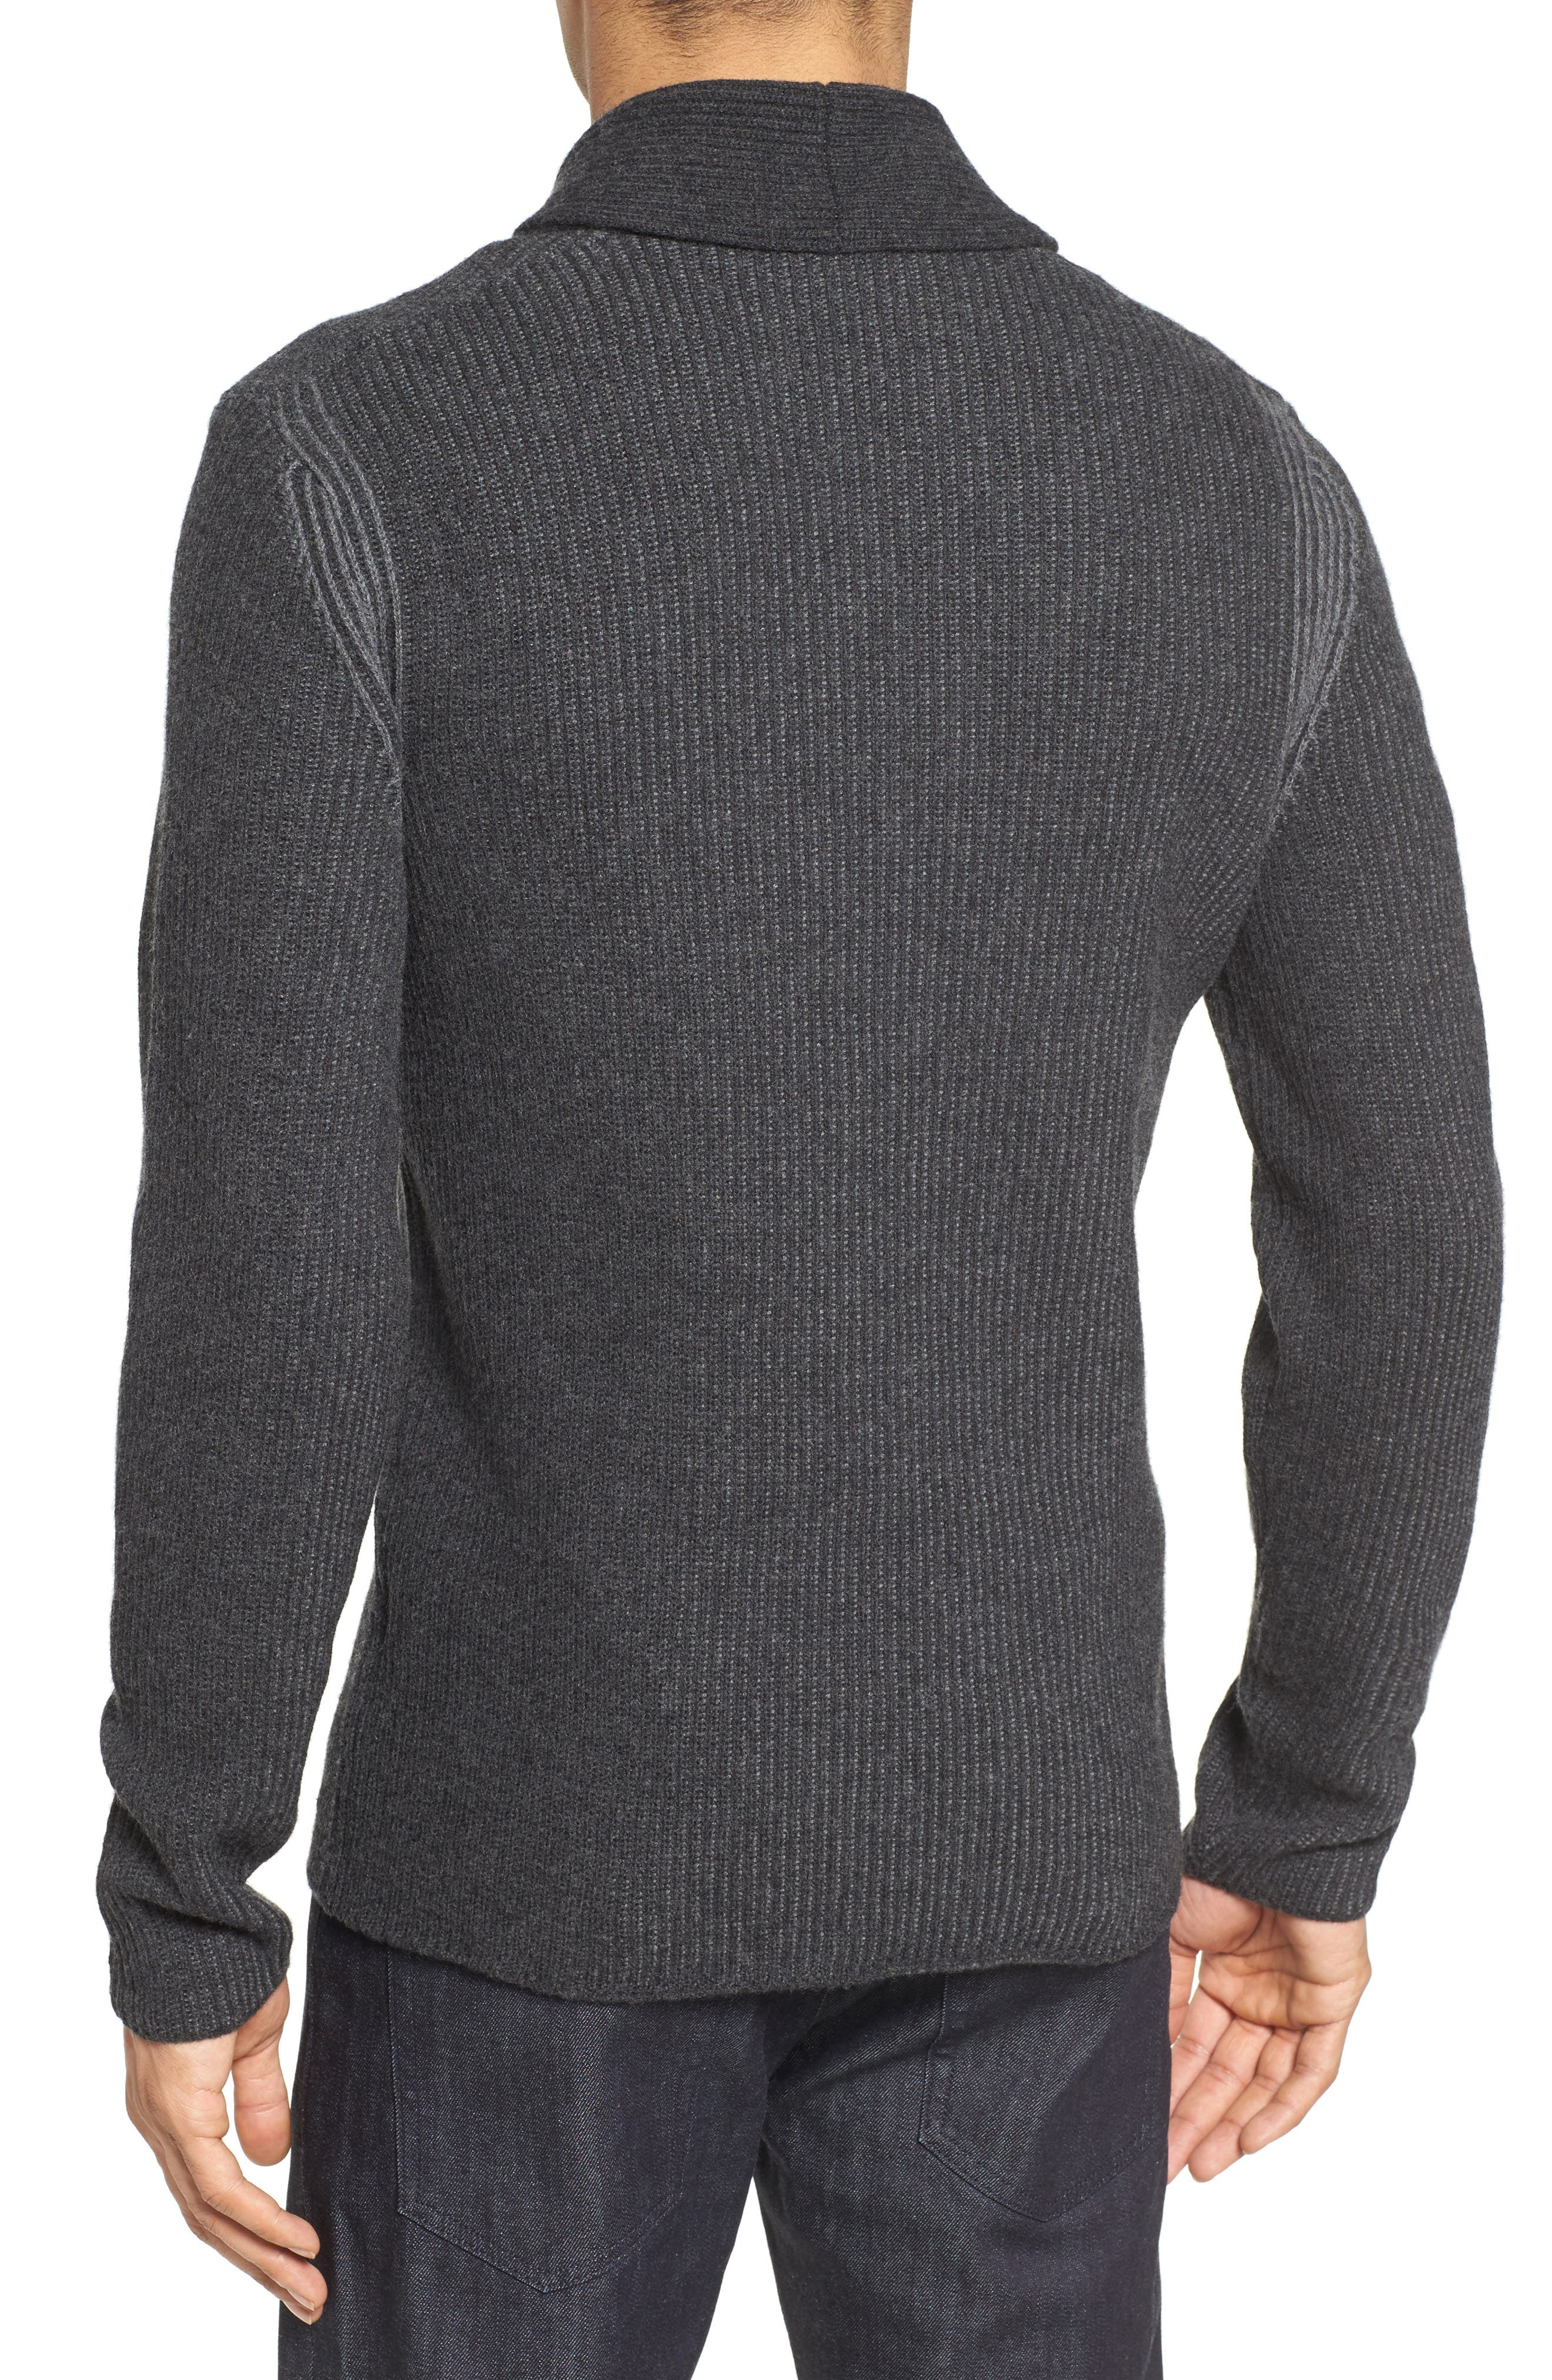 'Berno' Shawl Collar Wool Pullover,                             Alternate thumbnail 2, color,                             010